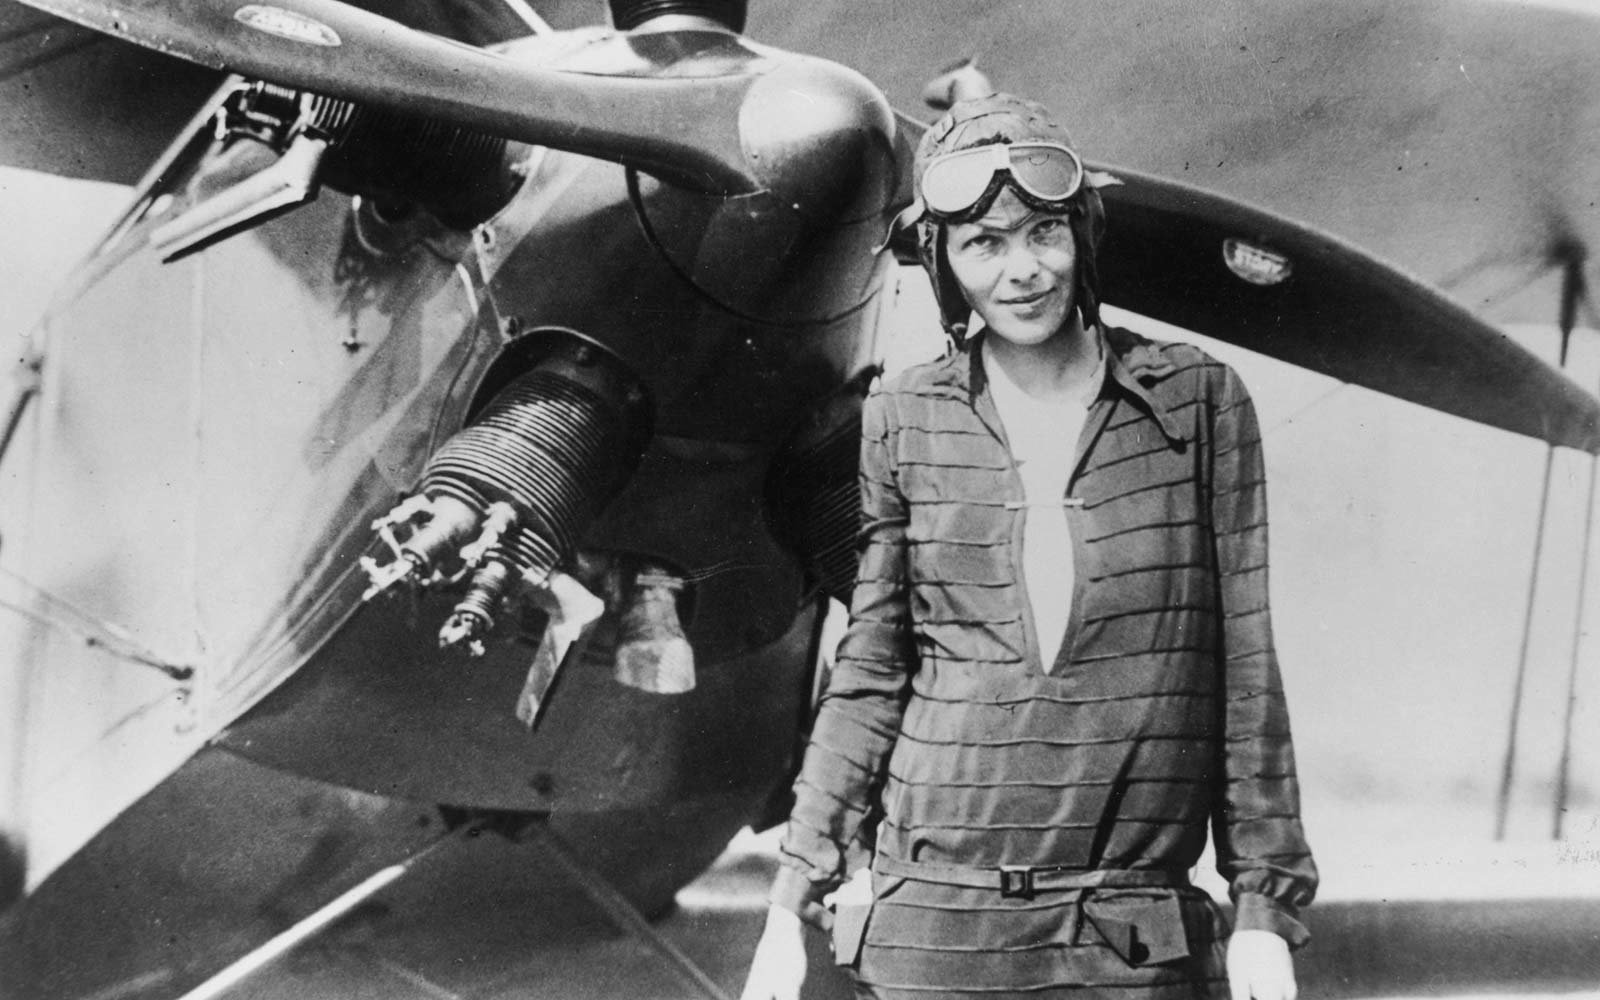 """Amelia Earhart in front of her bi-plane called """"Friendship"""" in Newfoundland"""